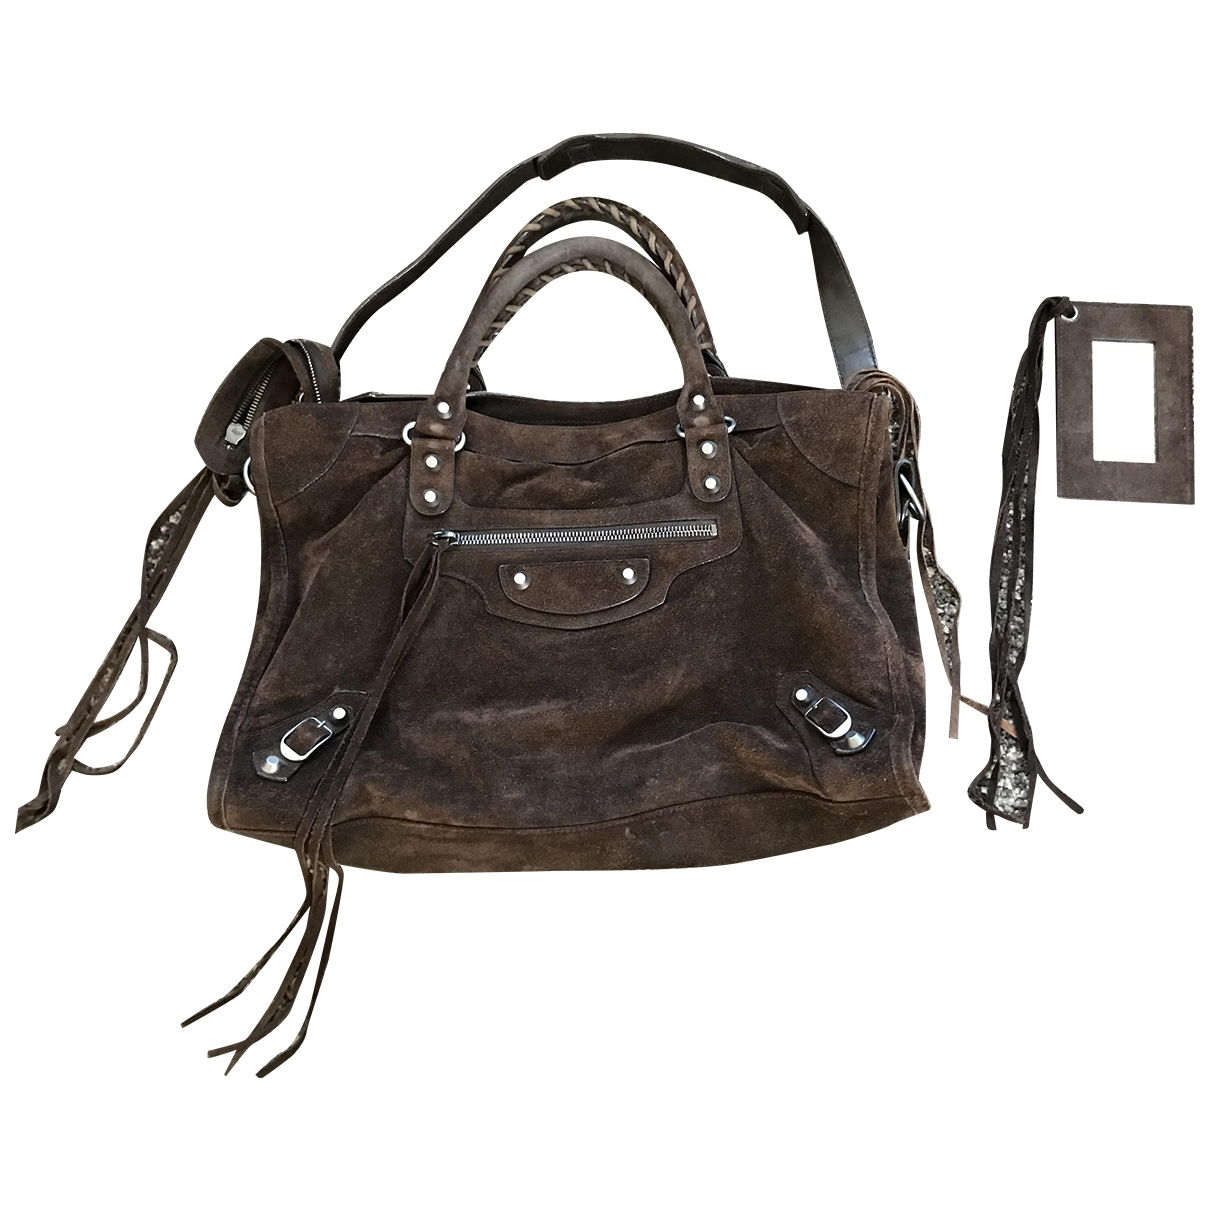 Balenciaga City Brown Suede handbag for Women \N